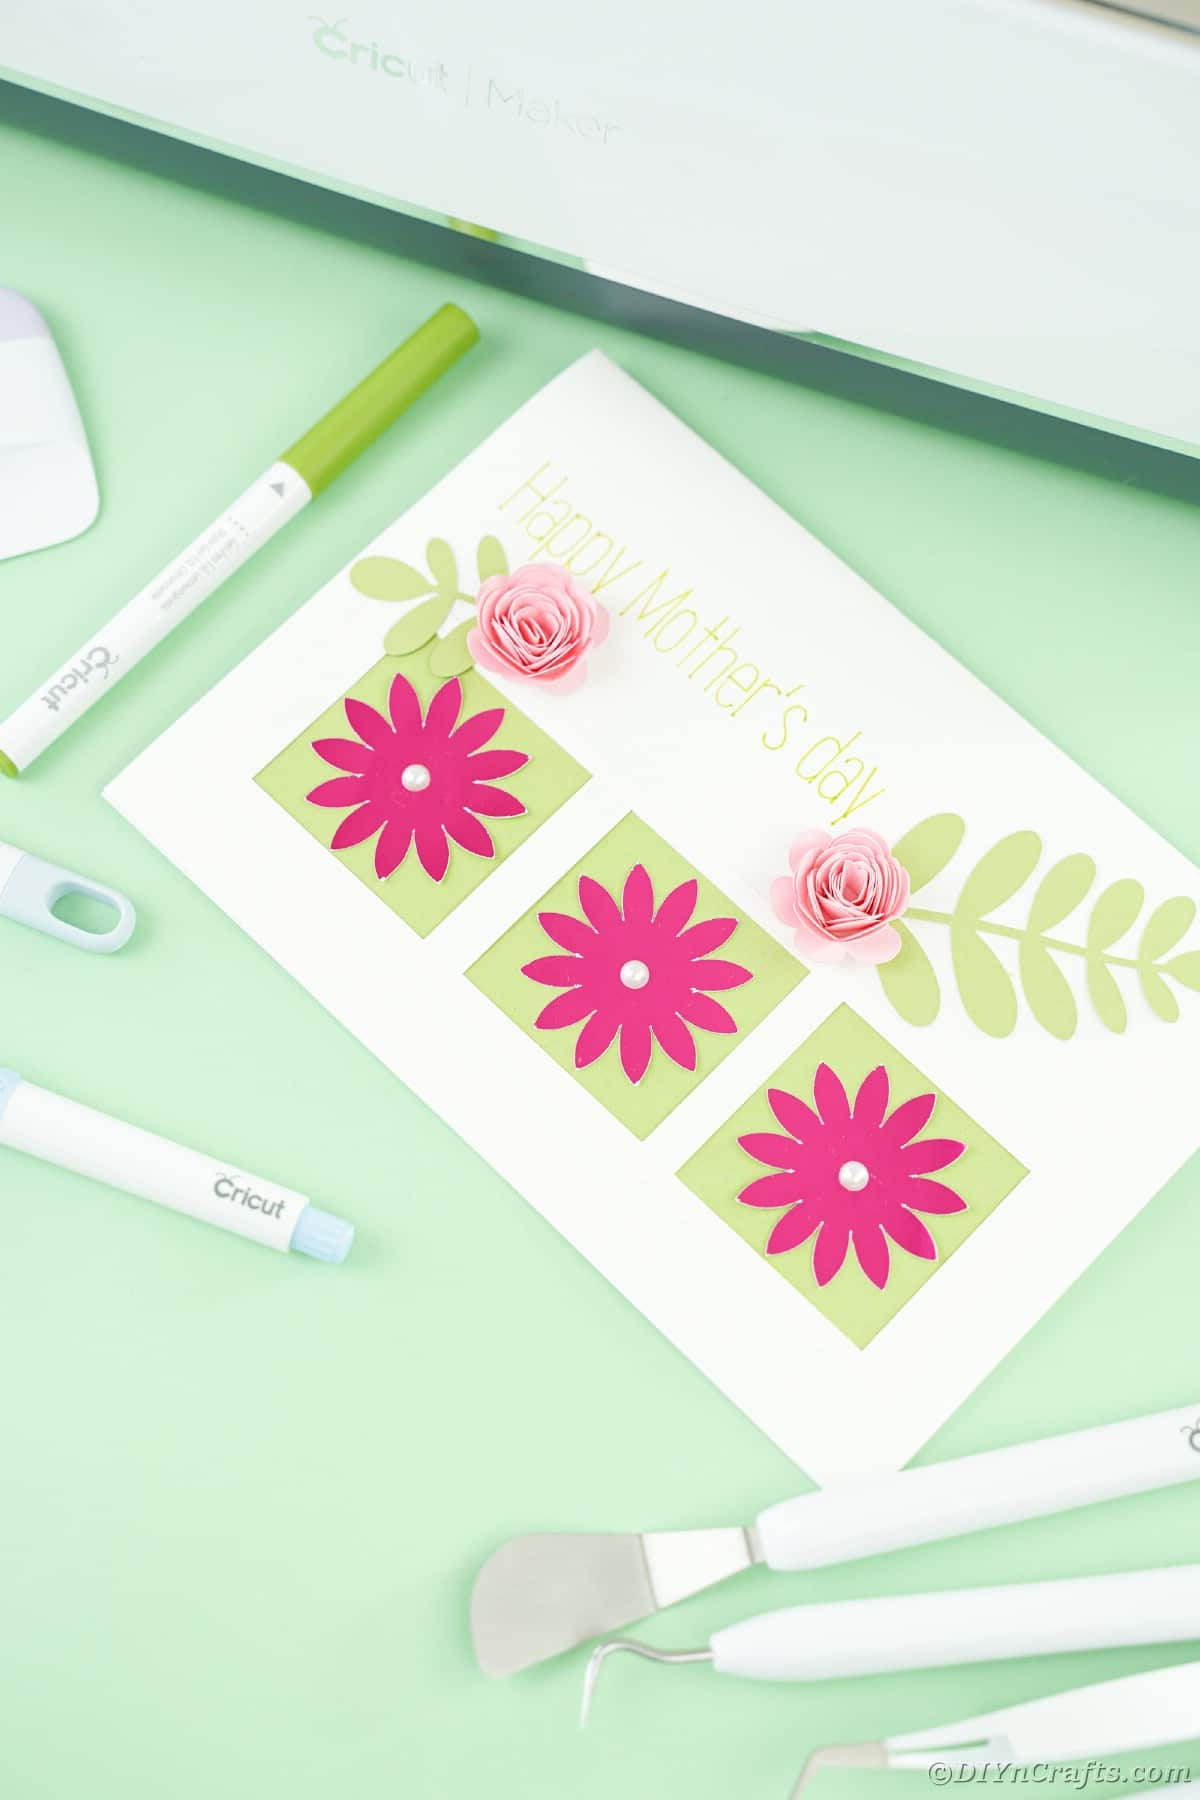 White card with pink flowers on green table by cricut tools